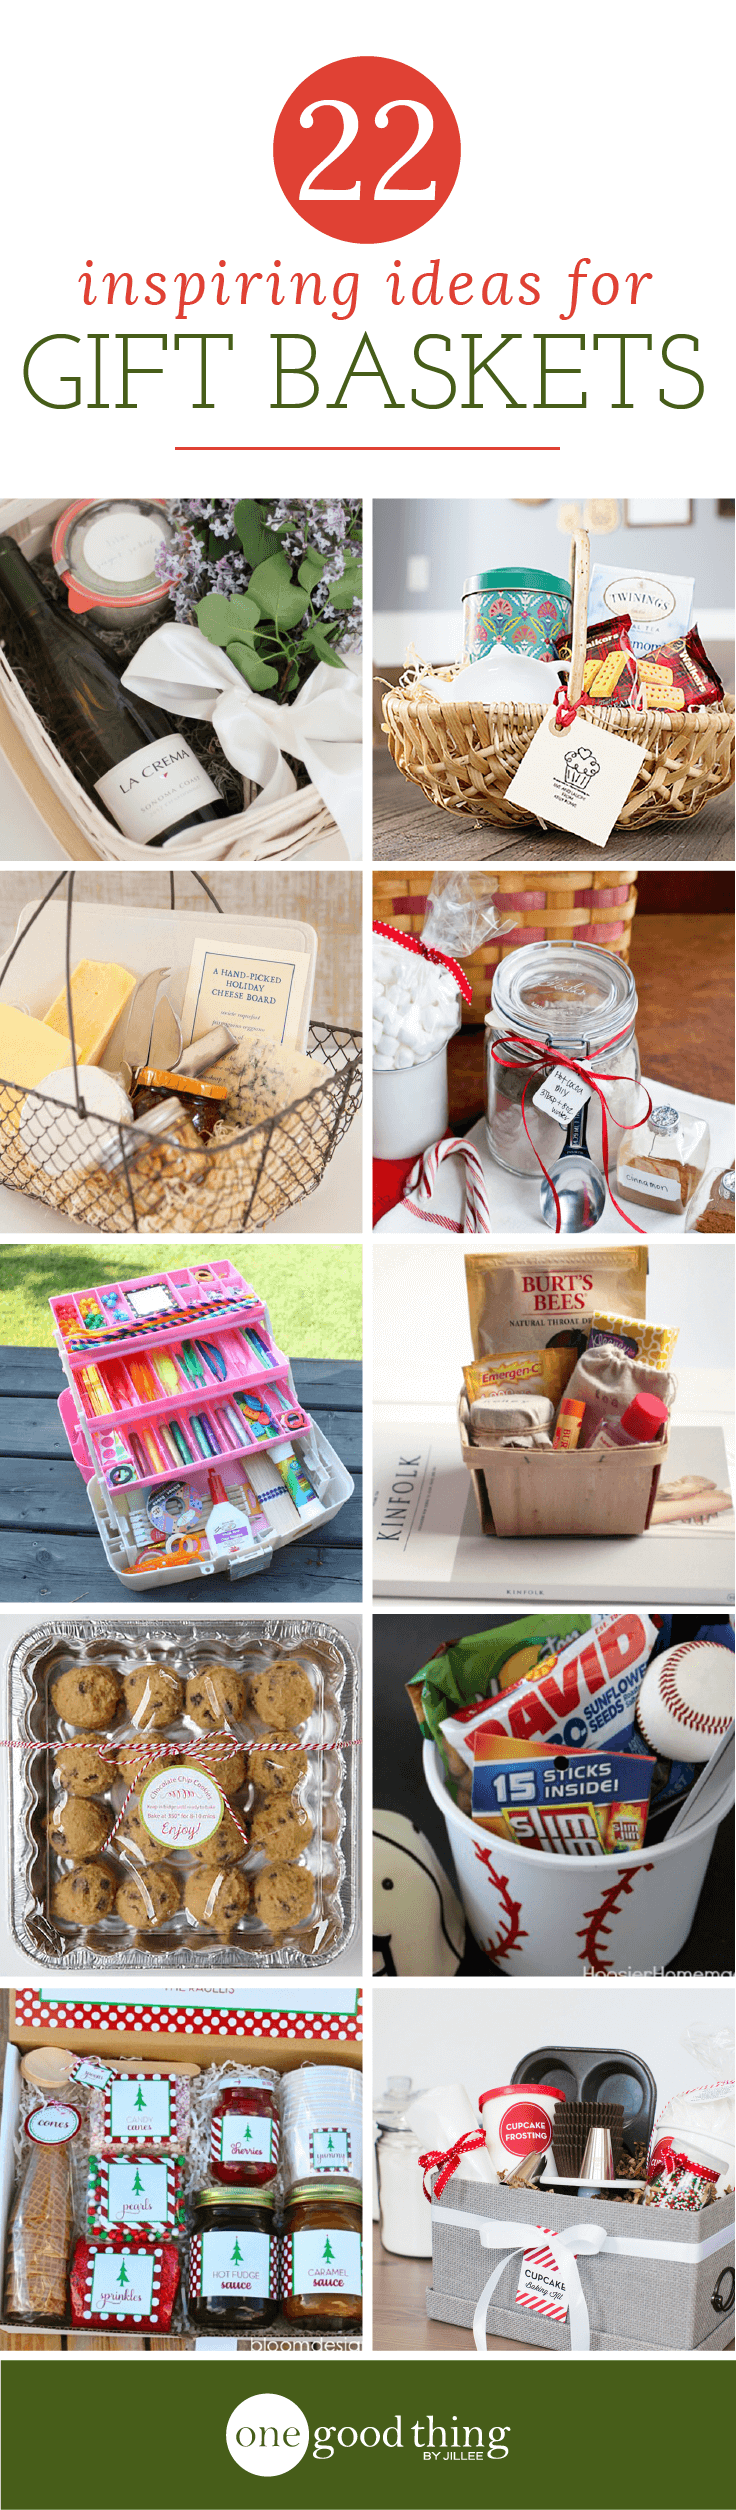 22 Inspiring Gift Basket Ideas That You Can Easily Copy